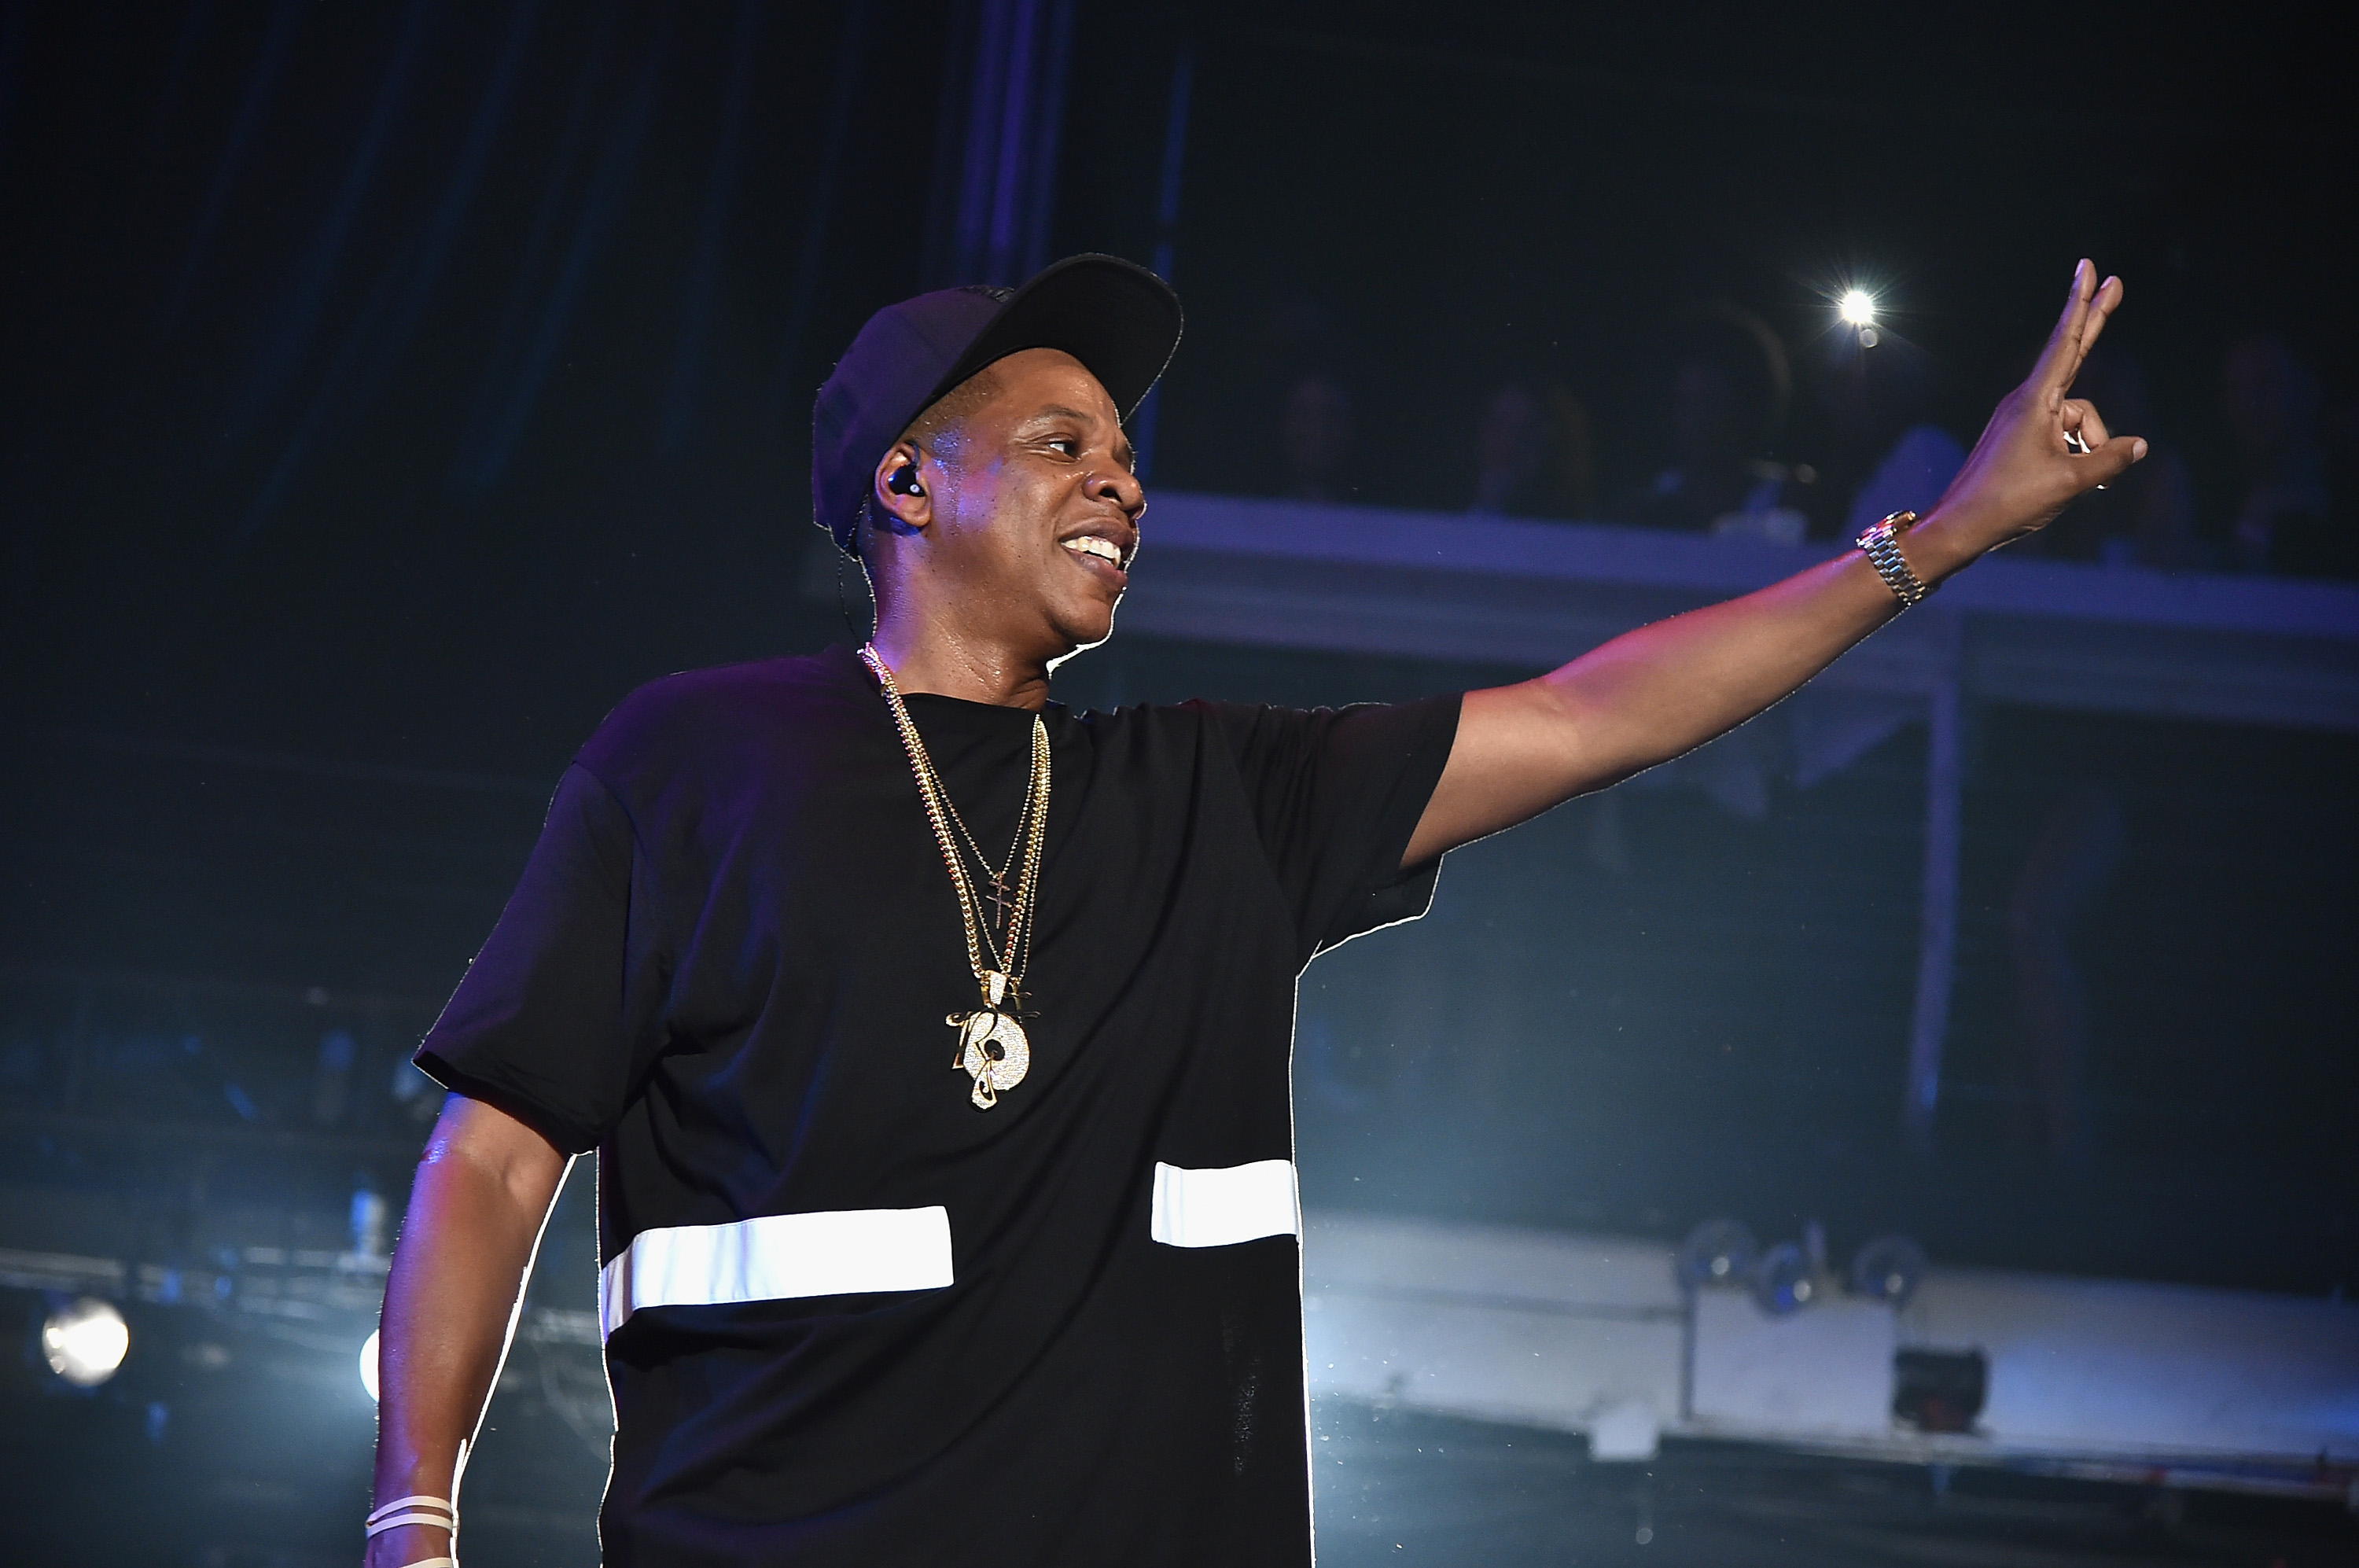 Jay-Z performs during TIDAL X: Jay-Z B-sides in NYC on May 17, 2015.